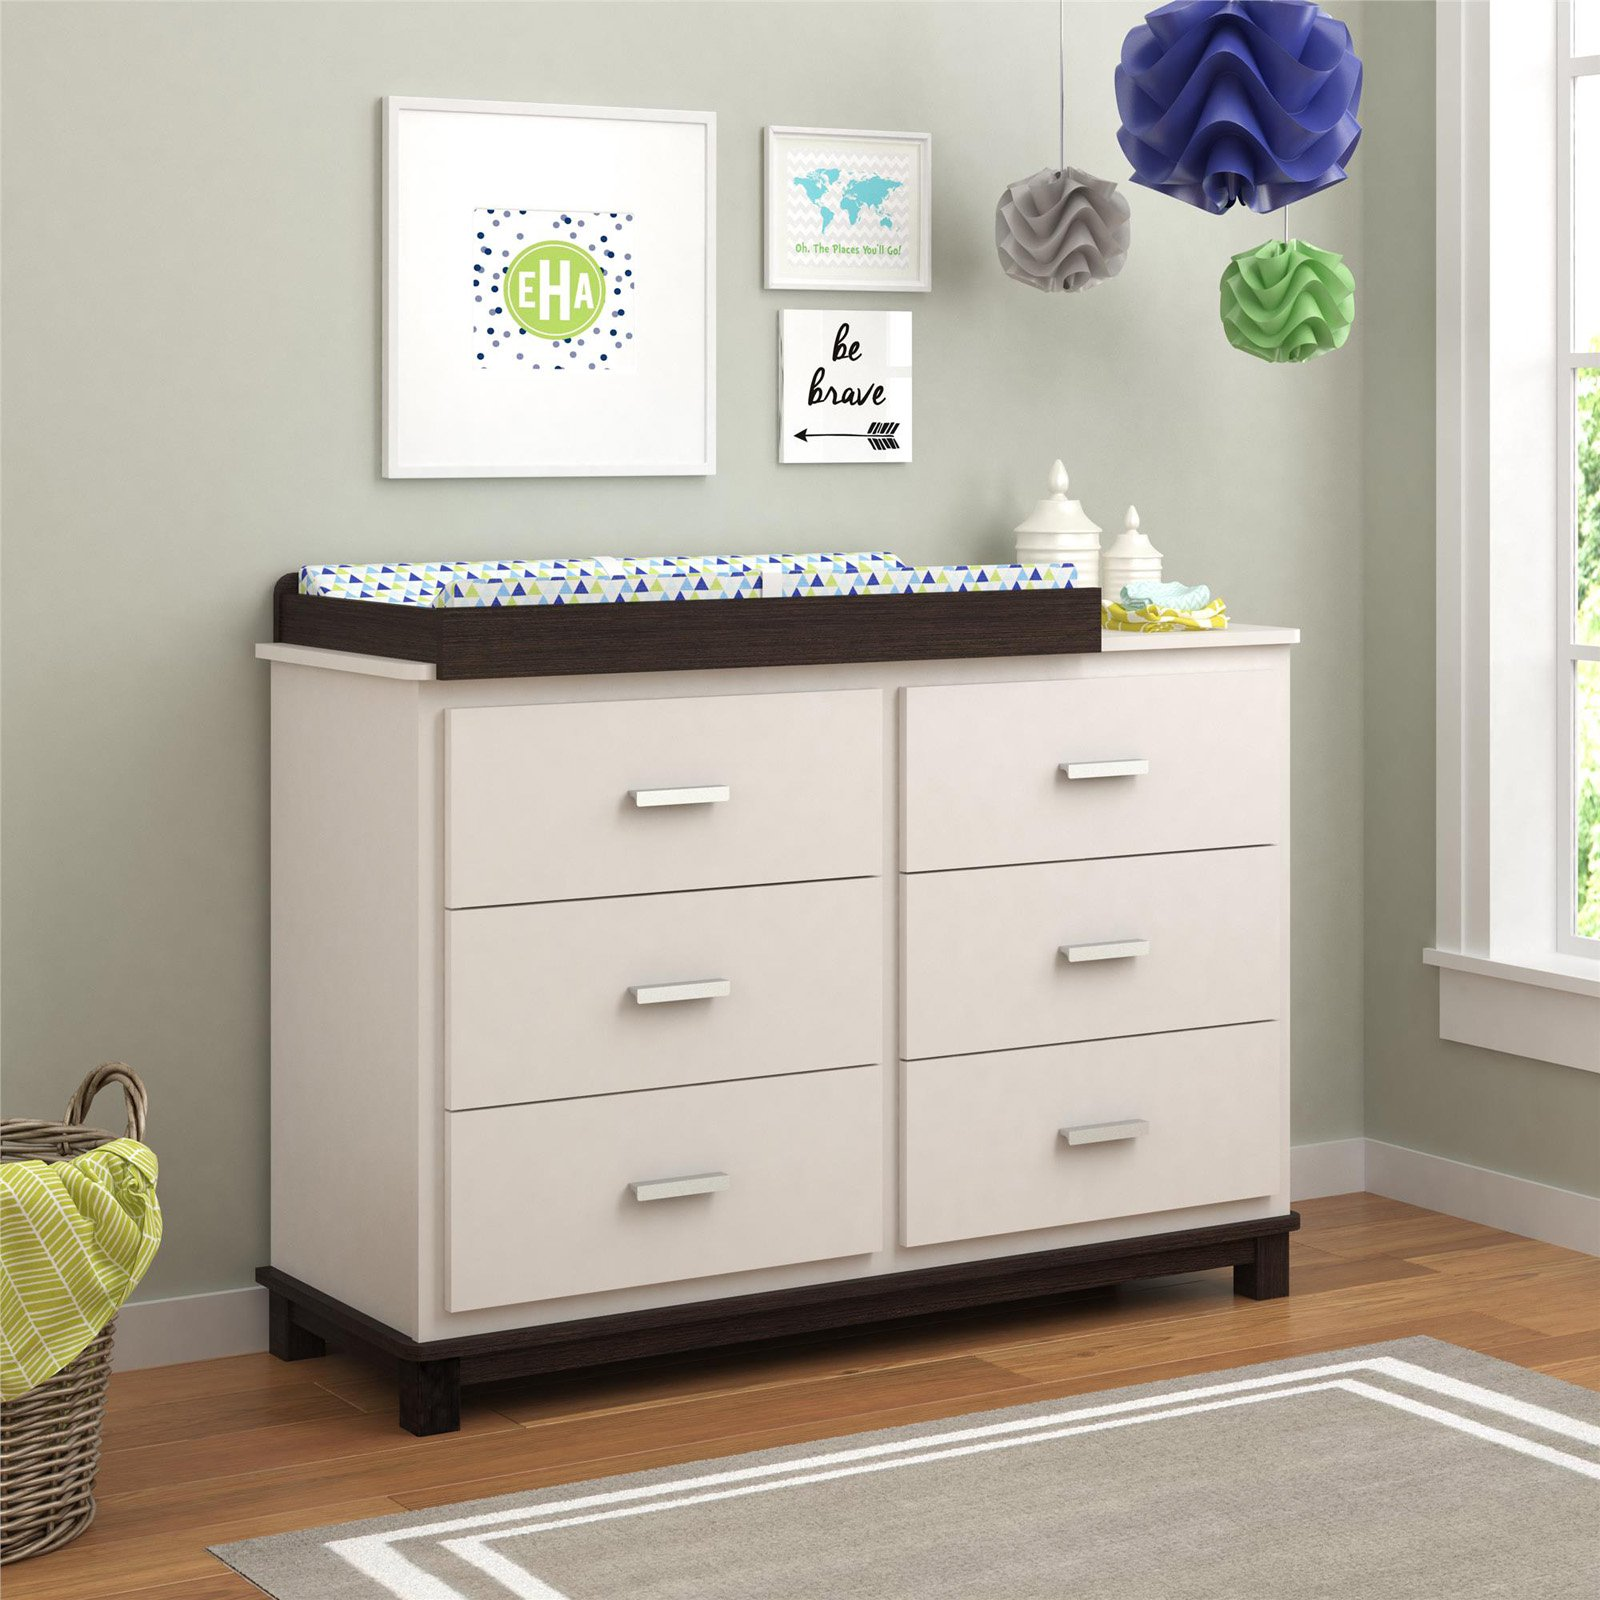 Cosco Leni 6 Drawer Dresser with Changing Table White Stipple by Ameriwood Home